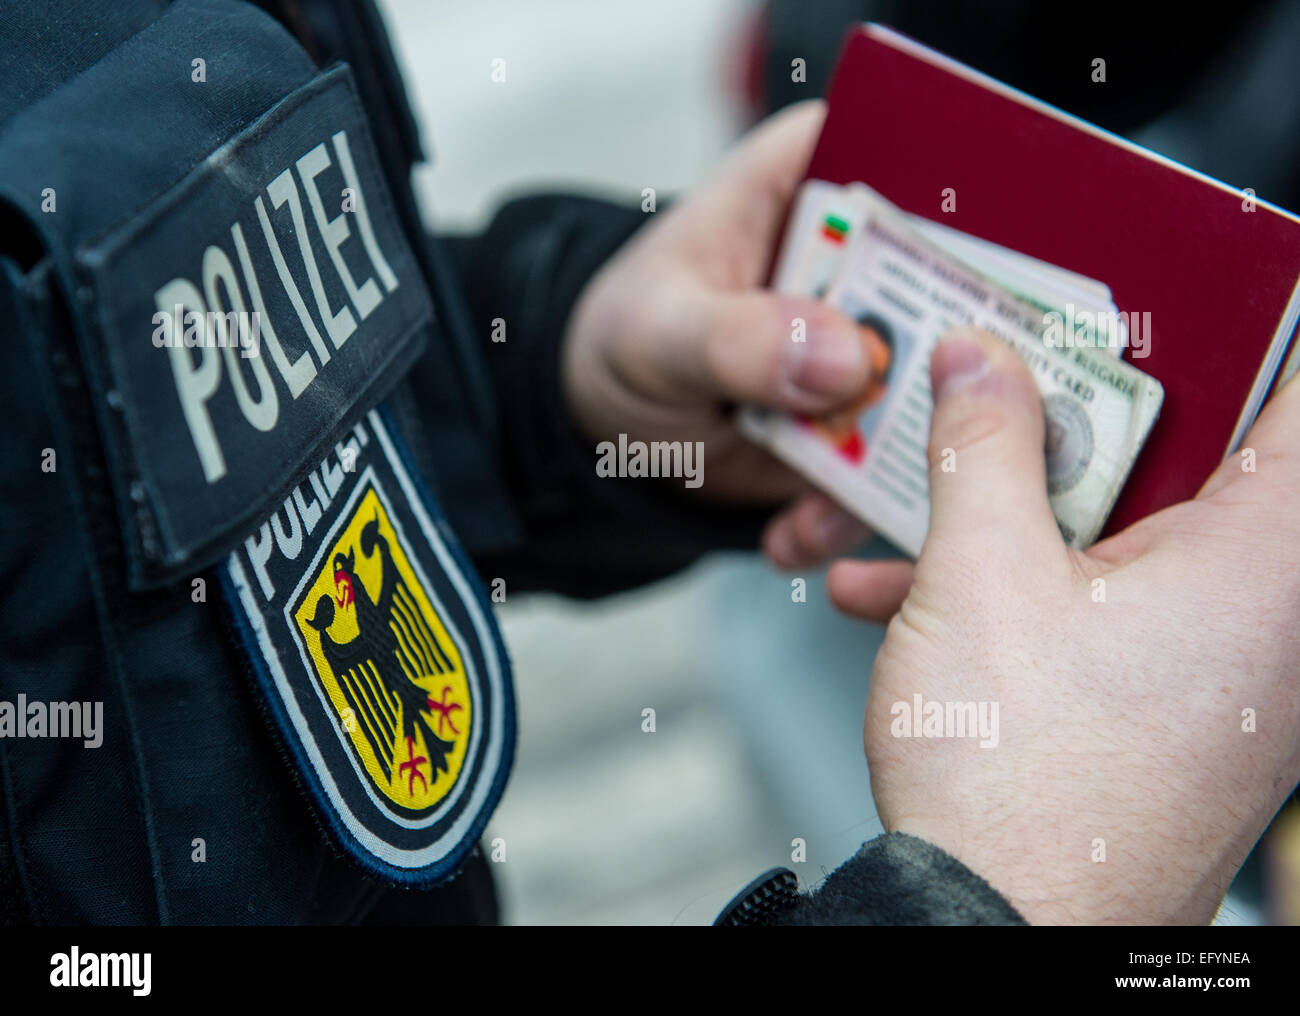 Passau, Germany. 12th Feb, 2015. An officer of the German federal police holds foreign ID-Cards in his hands during - Stock Image